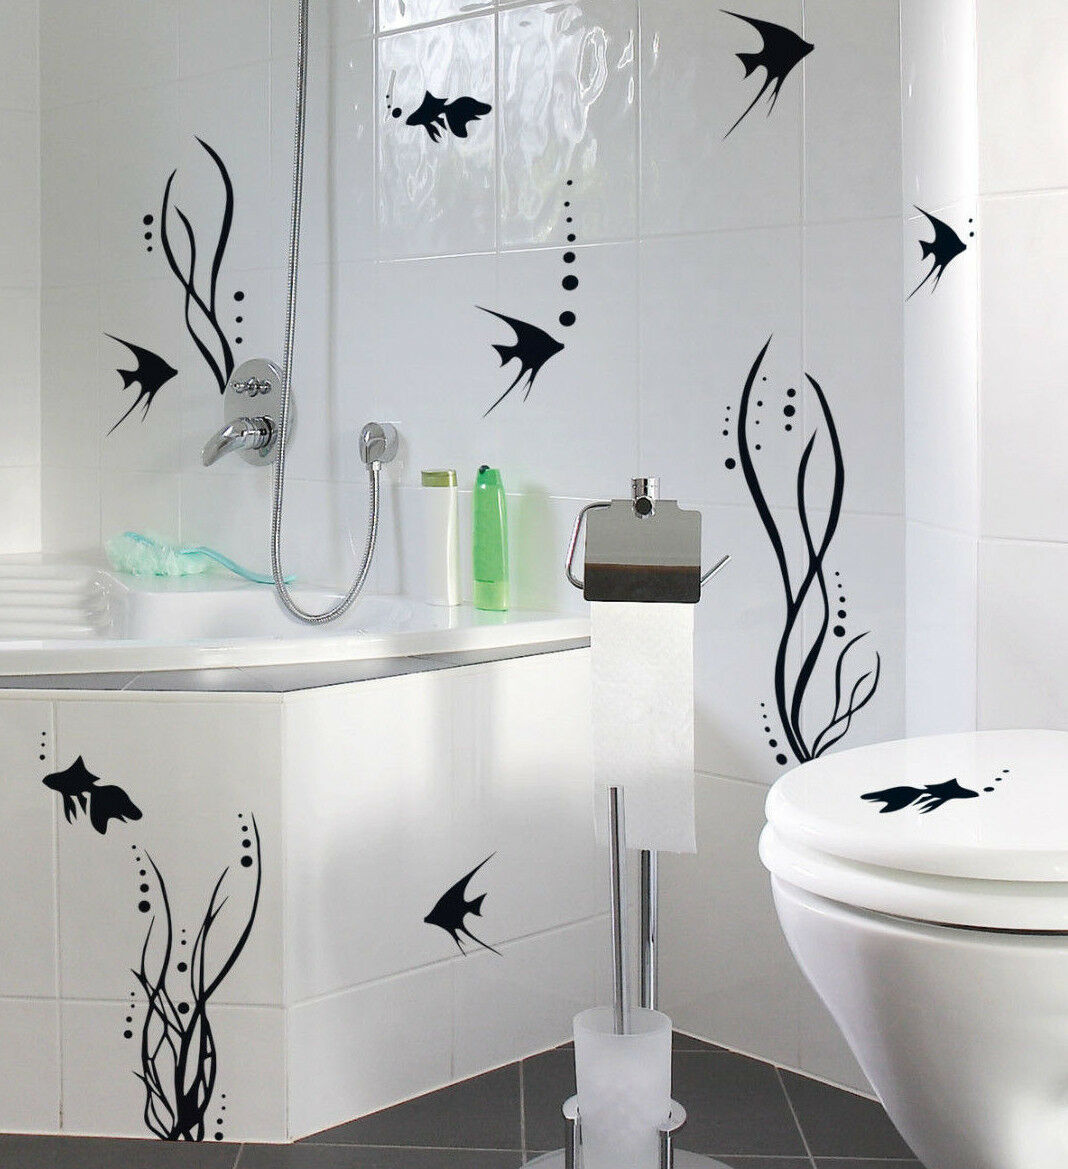 bad deko set fischewelt fische fliesen wandtattoo aufkleber sticker wc neu eur 4 90 picclick de. Black Bedroom Furniture Sets. Home Design Ideas